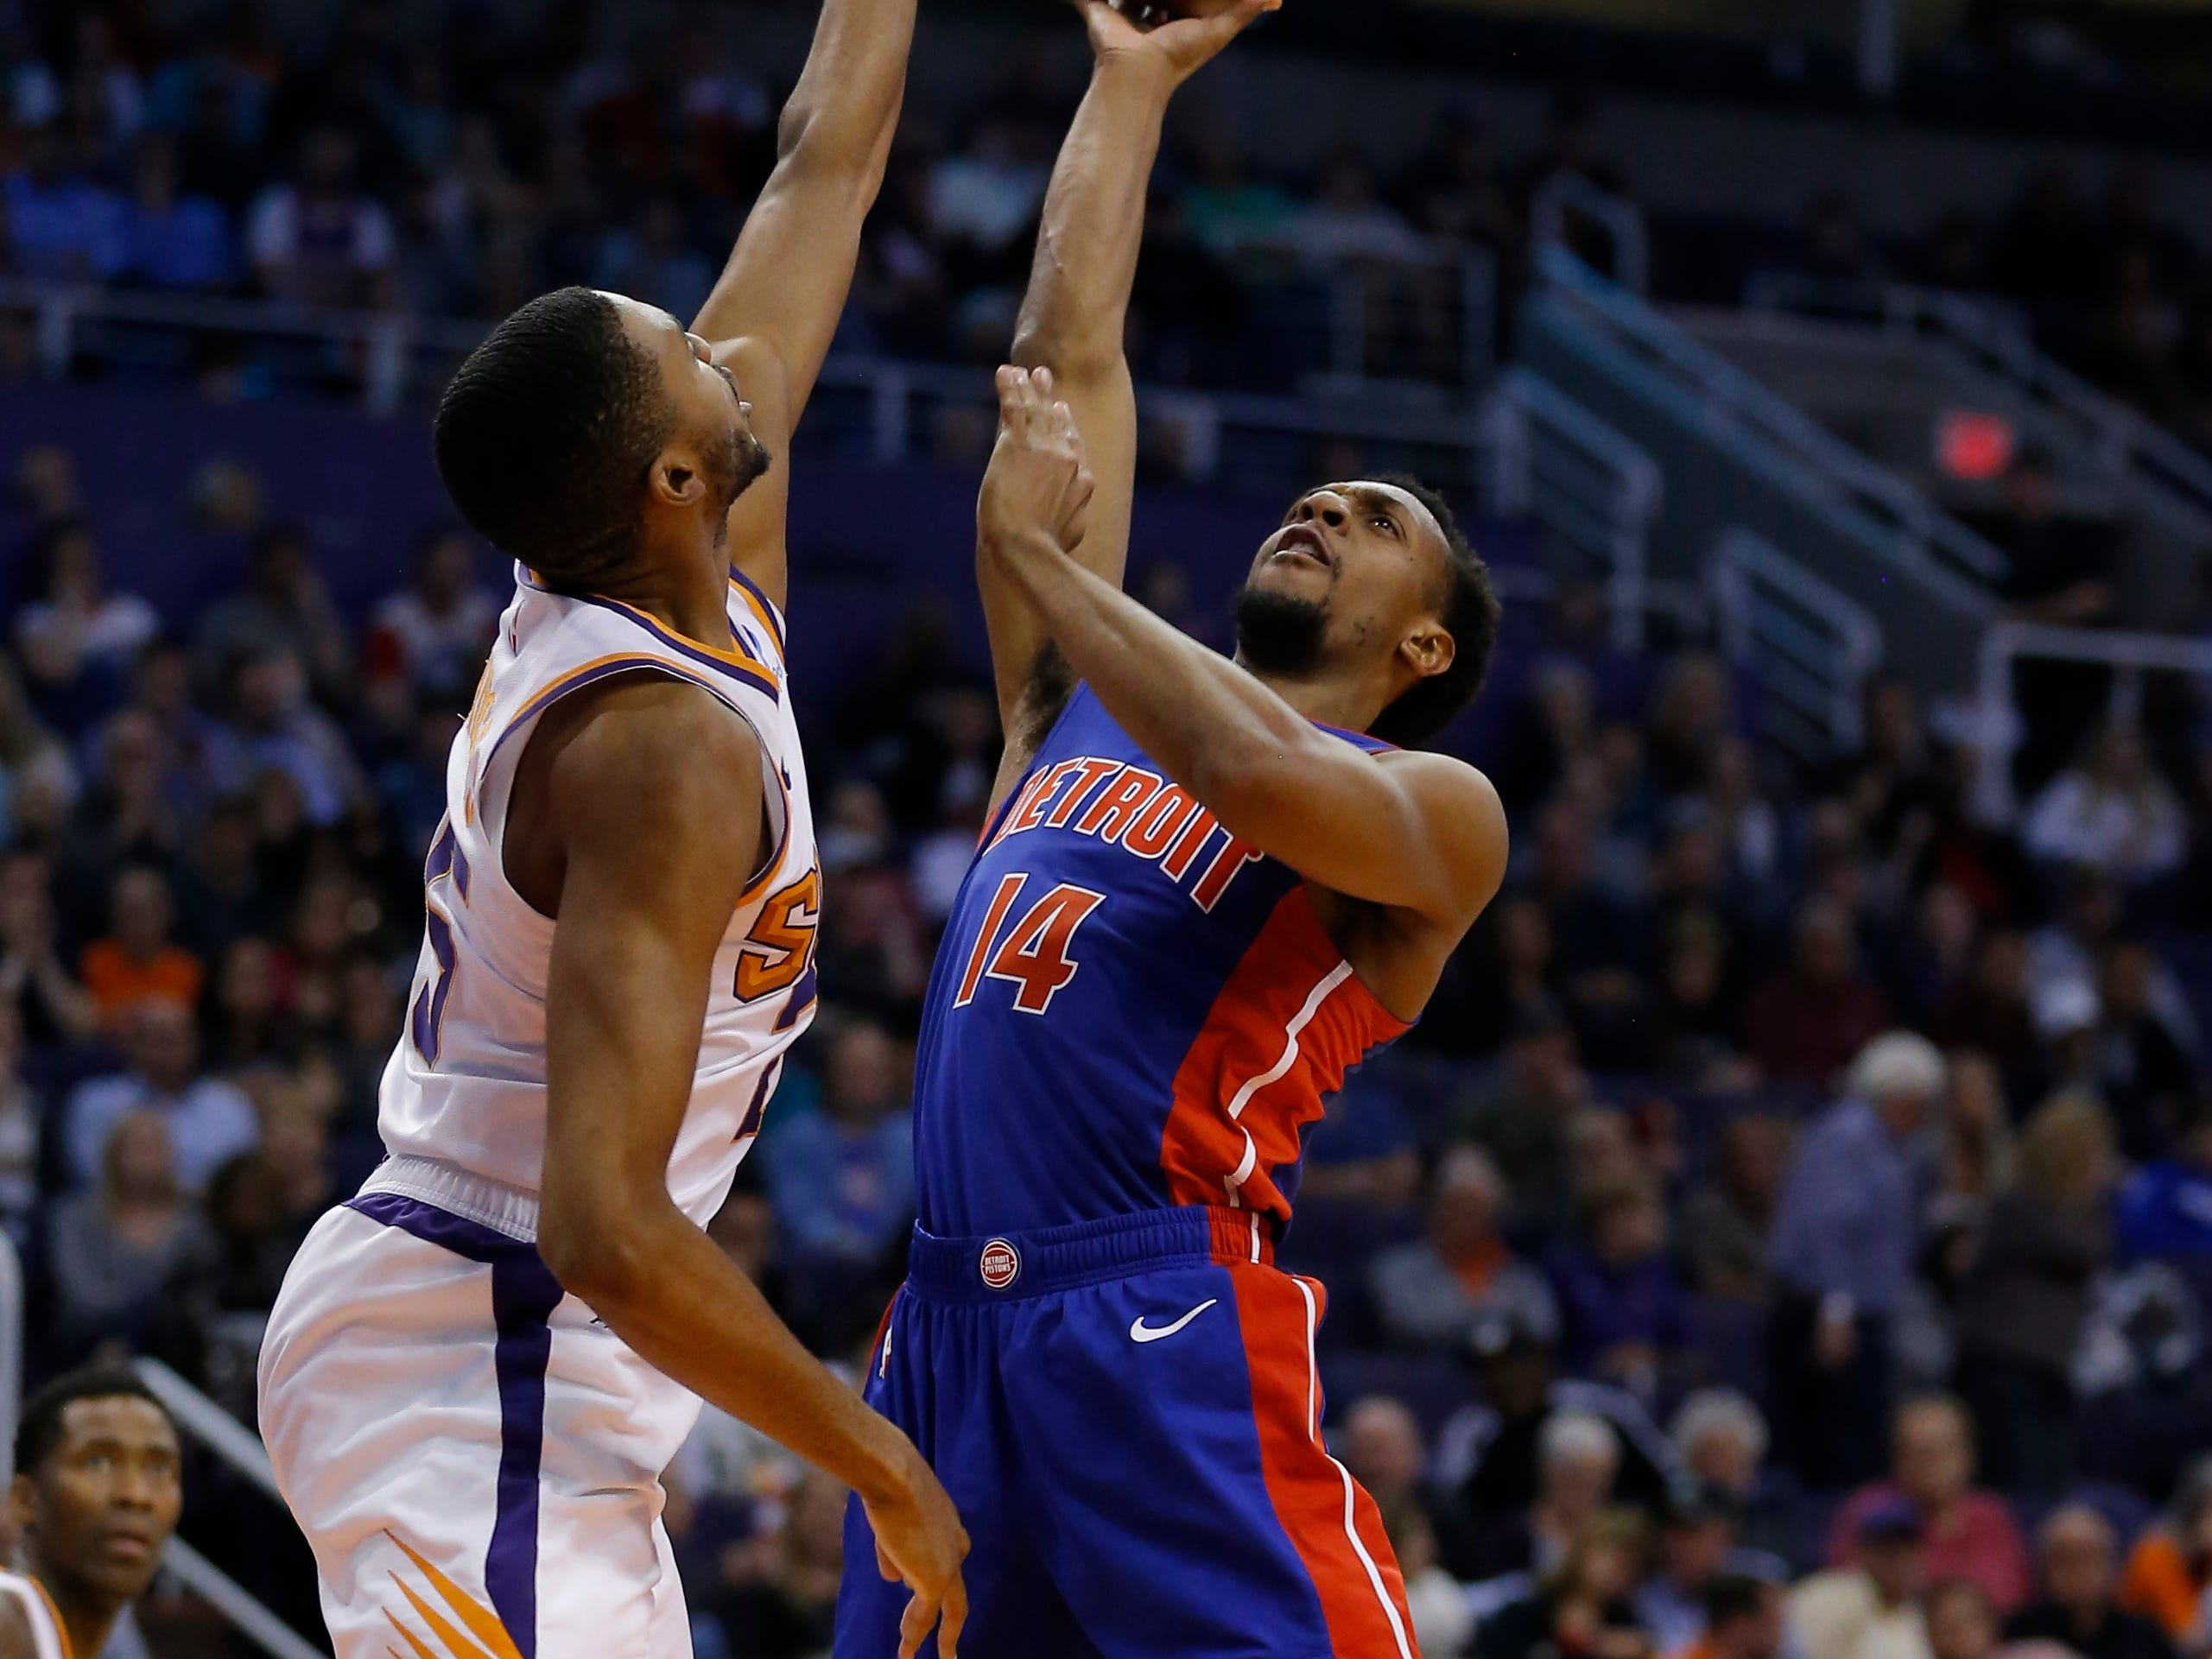 Mar 21, 2019; Phoenix, AZ, USA; Detroit Pistons guard Ish Smith (14) drives against Phoenix Suns forward Mikal Bridges (25) in the second half during an NBA basketball game at Talking Stick Resort Arena.